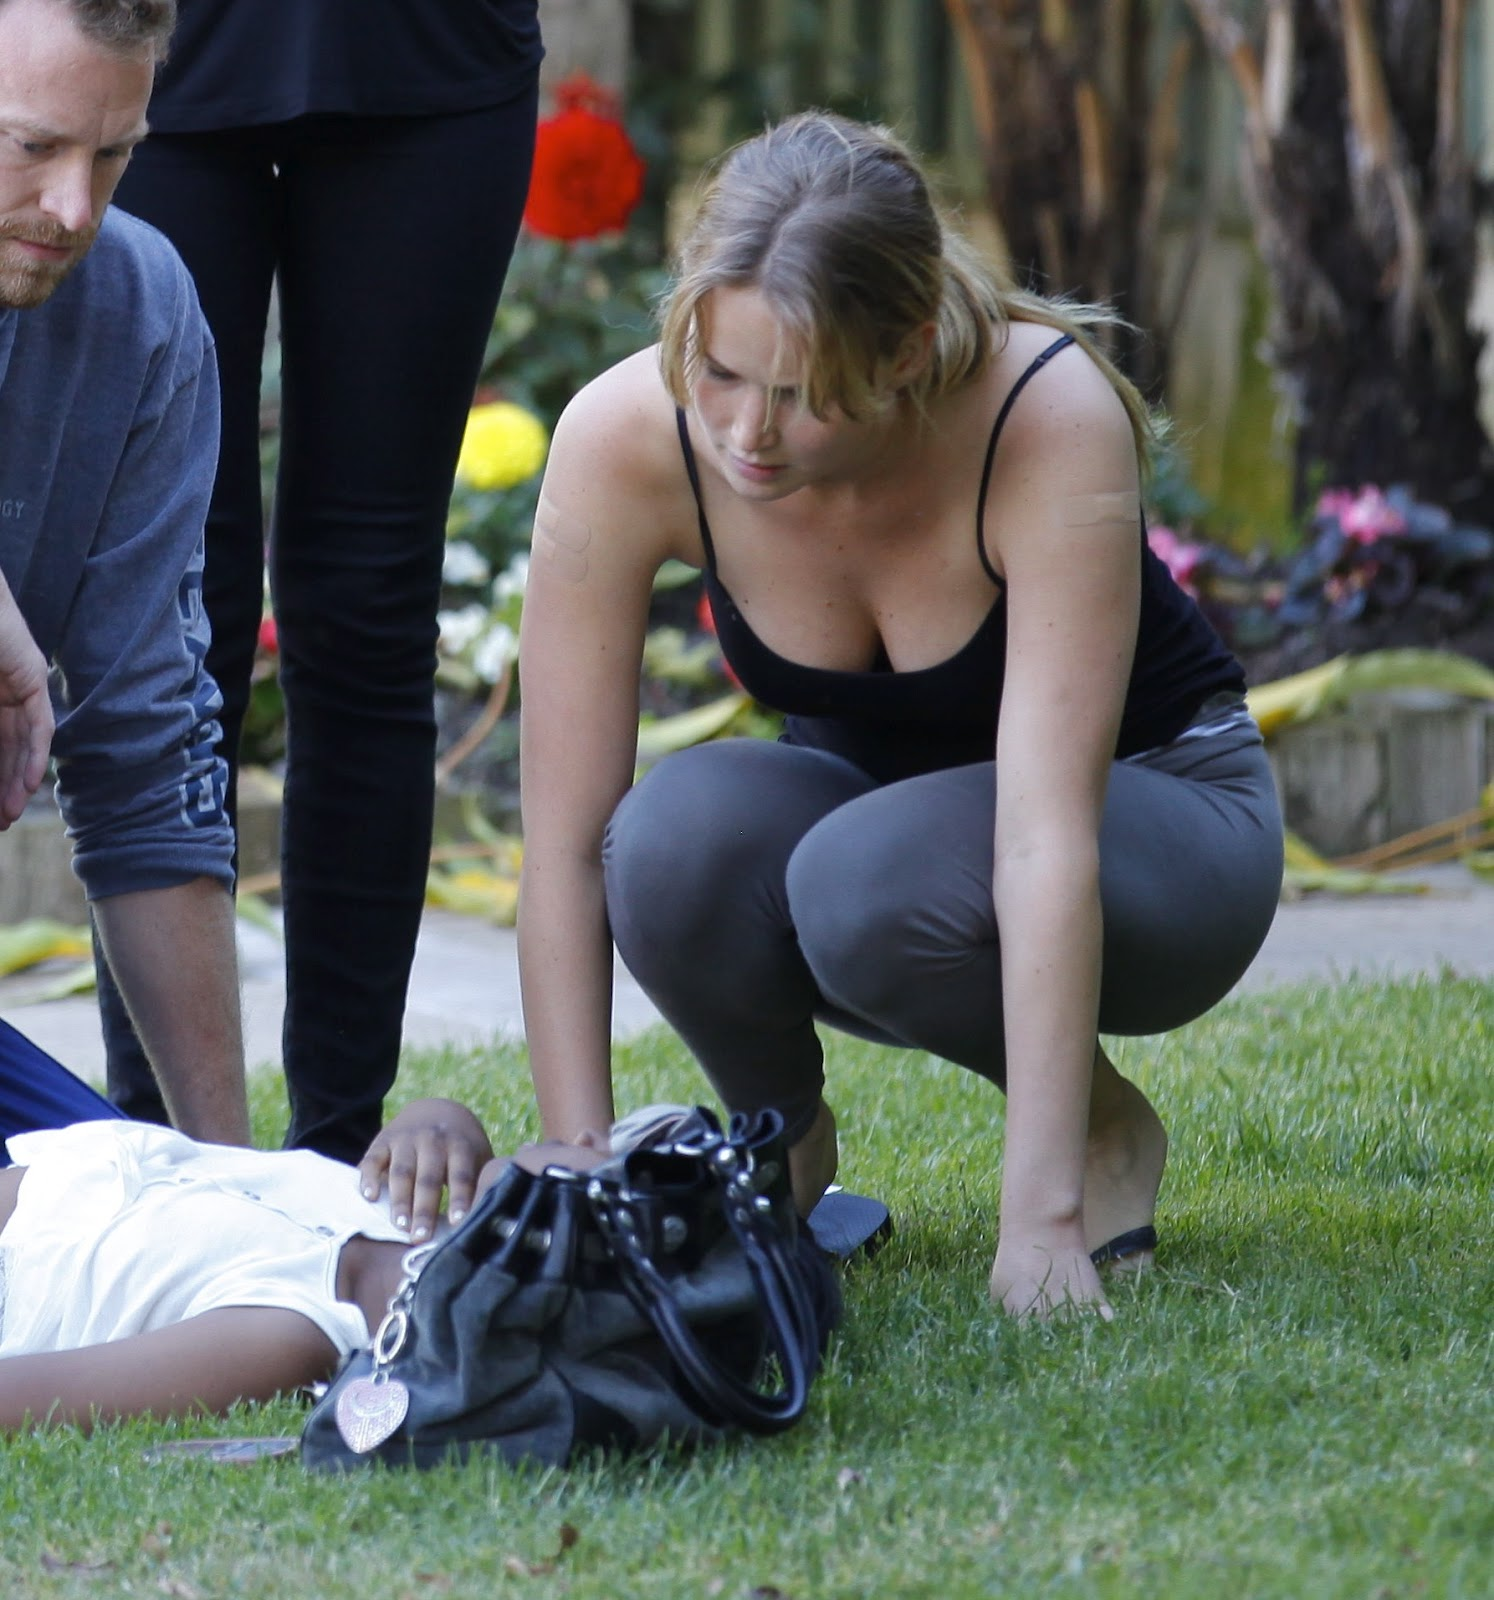 http://4.bp.blogspot.com/-W2K--Ws4_E8/T_XSNkjWrXI/AAAAAAAAD-8/e42v4NzZ6pw/s1600/jennifer_lawrence_helping_a_woman_in_santa_monica_june_25_2012_ms2BnQy.jpg